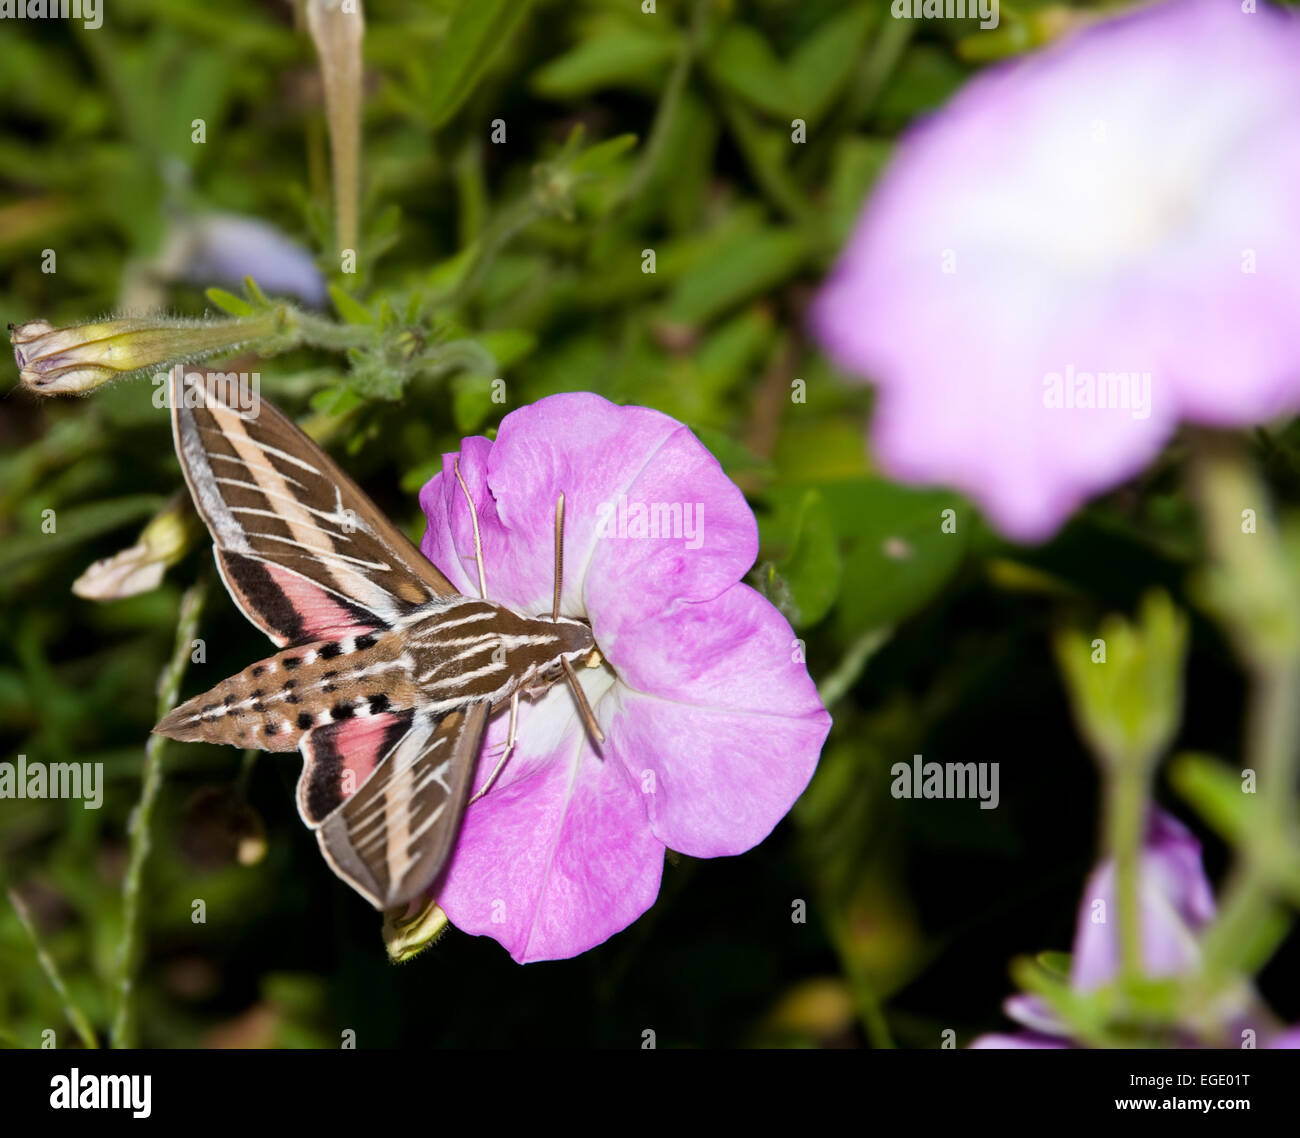 White lined sphinx moth stock photos white lined sphinx moth stock white lined sphinx moth feeding on a petunia flower stock image mightylinksfo